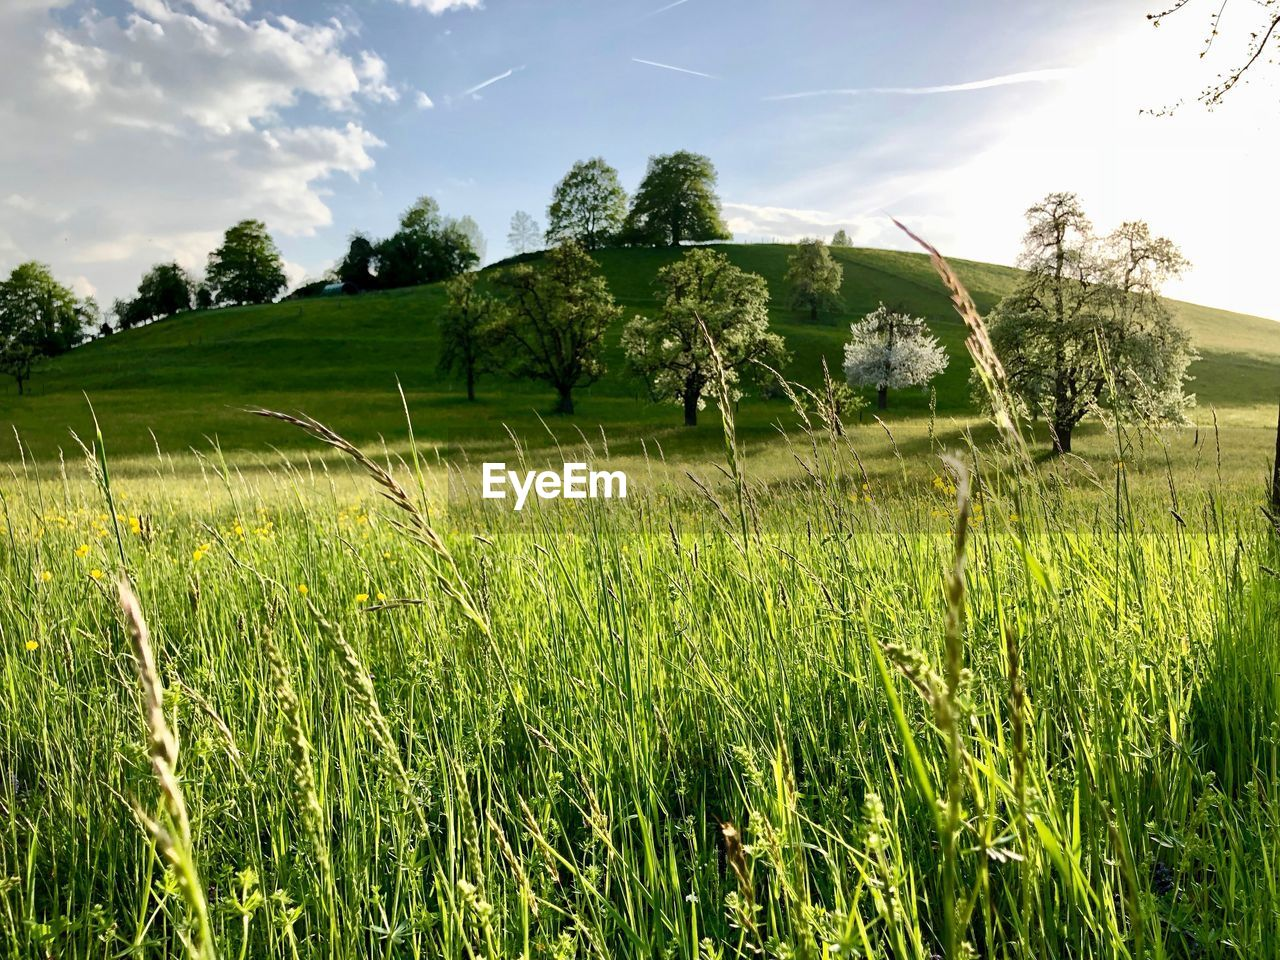 plant, sky, field, land, beauty in nature, landscape, tranquility, tranquil scene, growth, green color, scenics - nature, tree, grass, environment, nature, day, rural scene, no people, cloud - sky, agriculture, outdoors